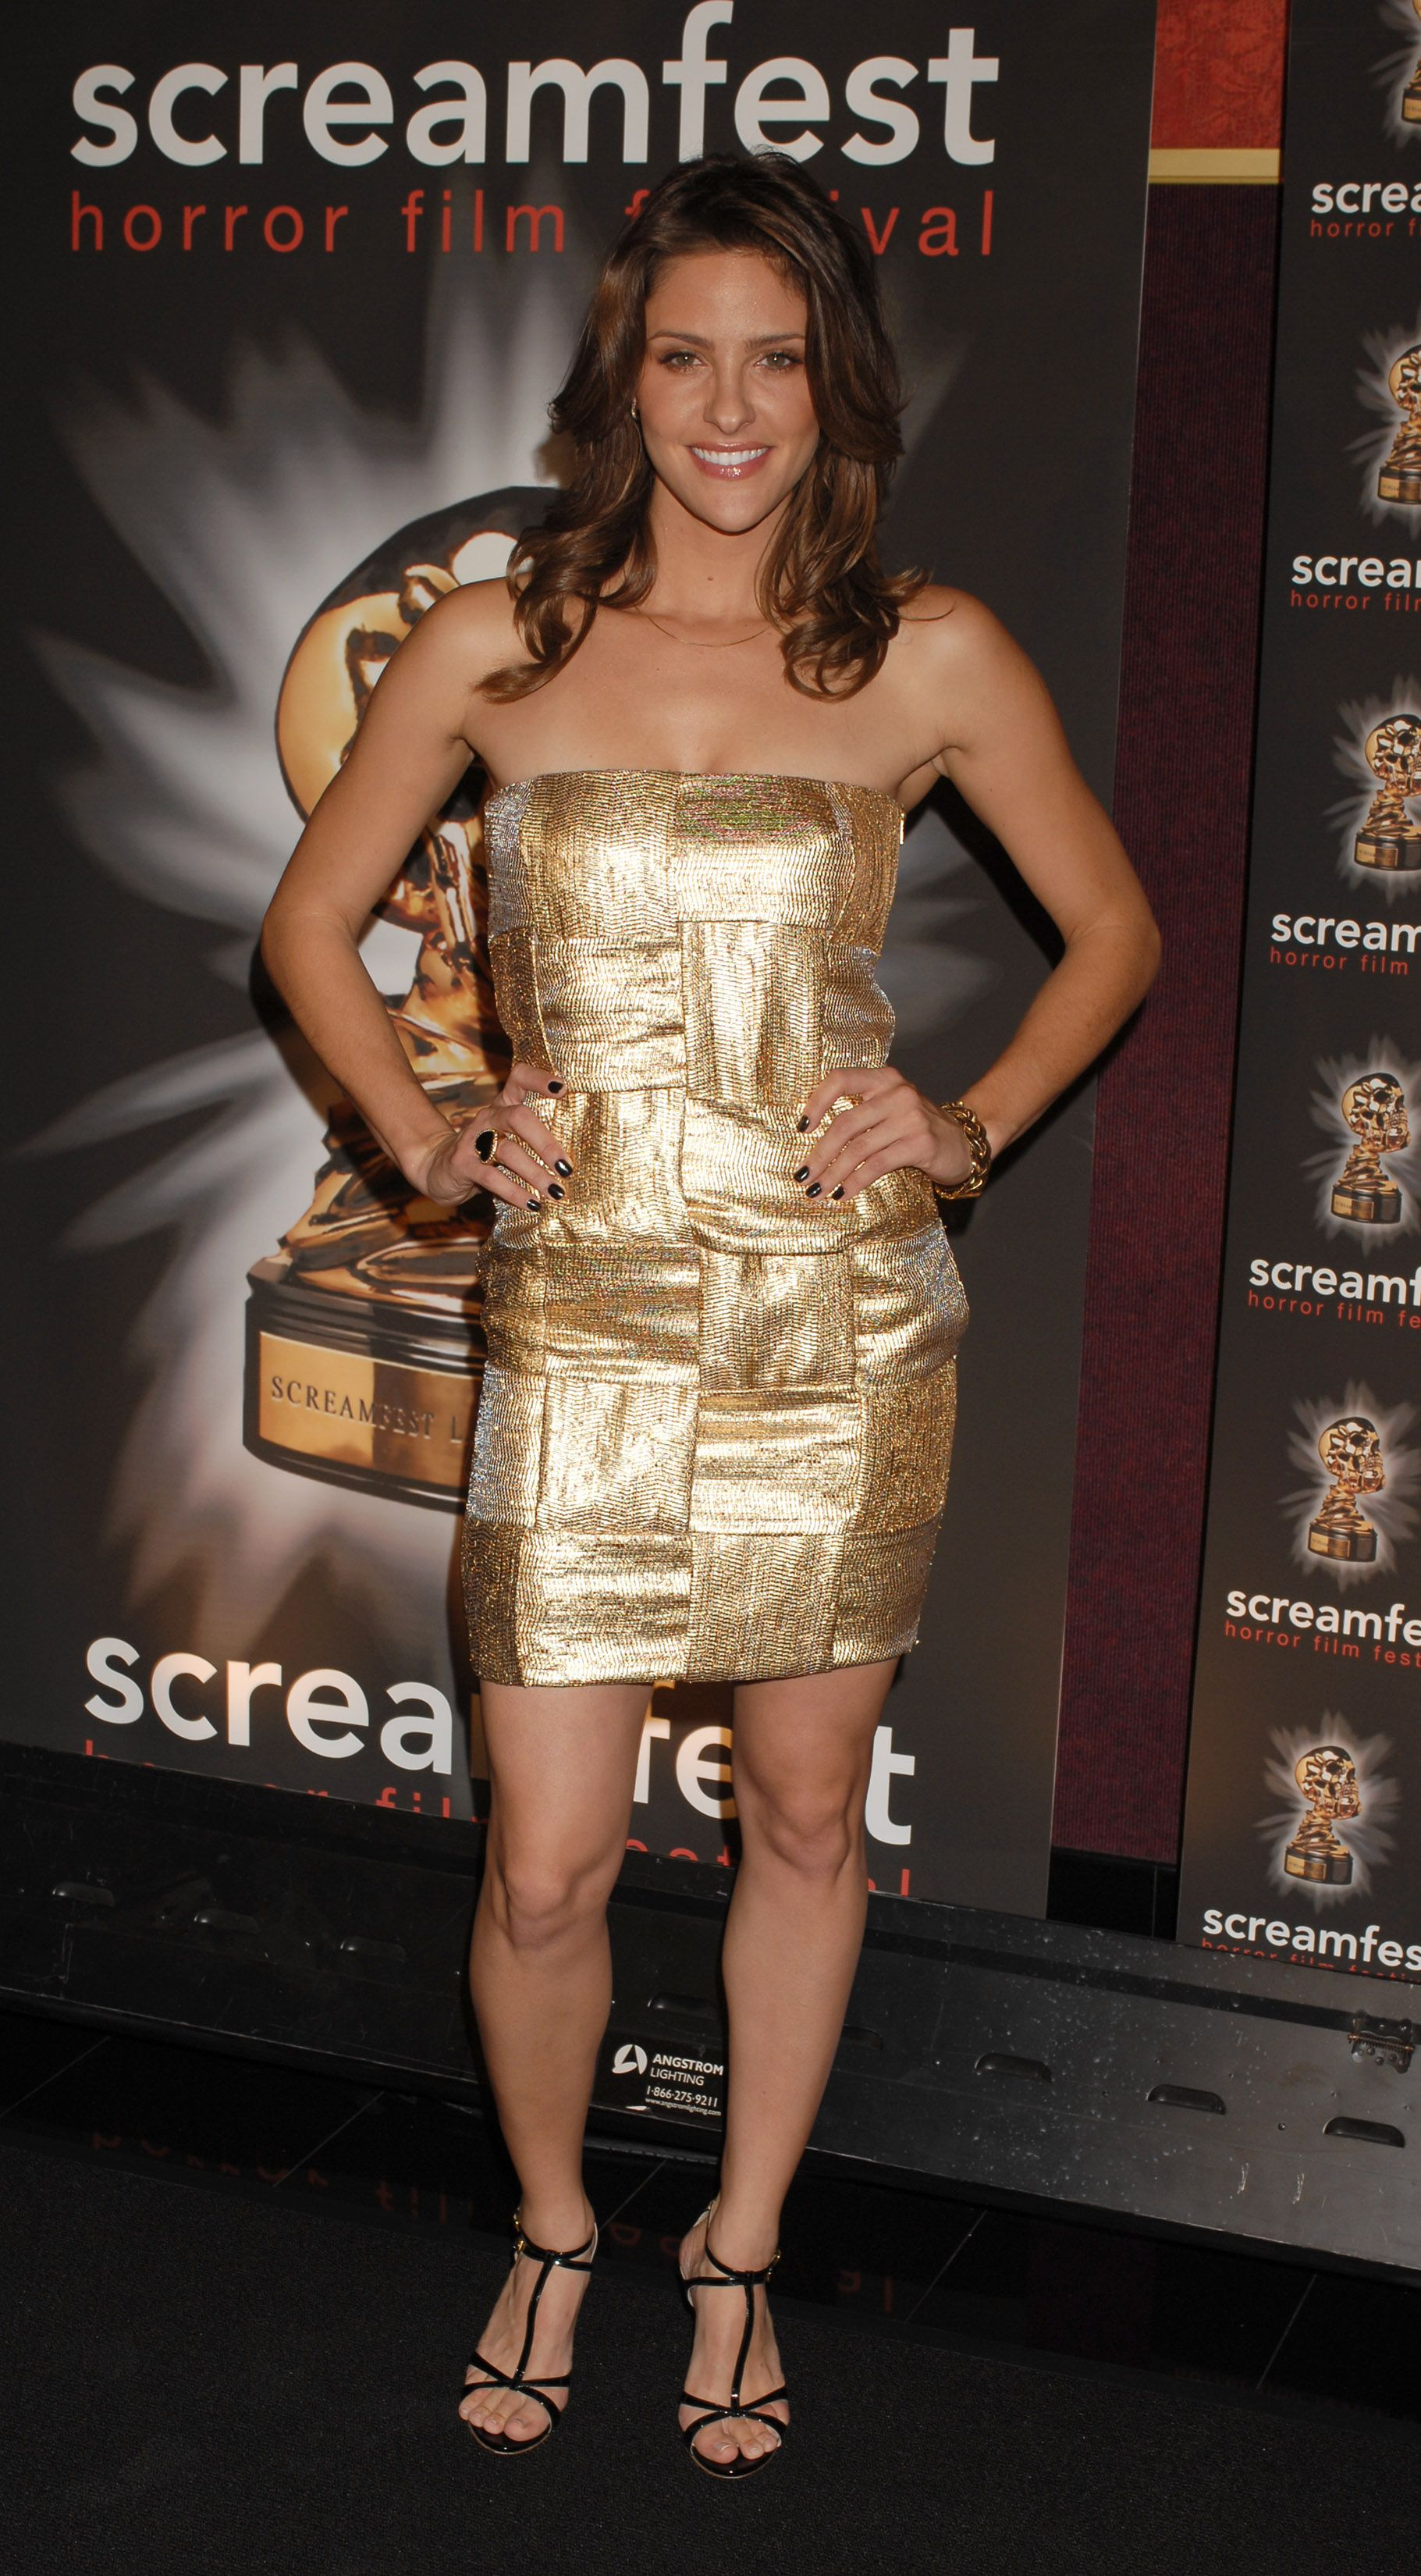 Feet Jill Wagner naked (87 fotos) Fappening, Instagram, cleavage